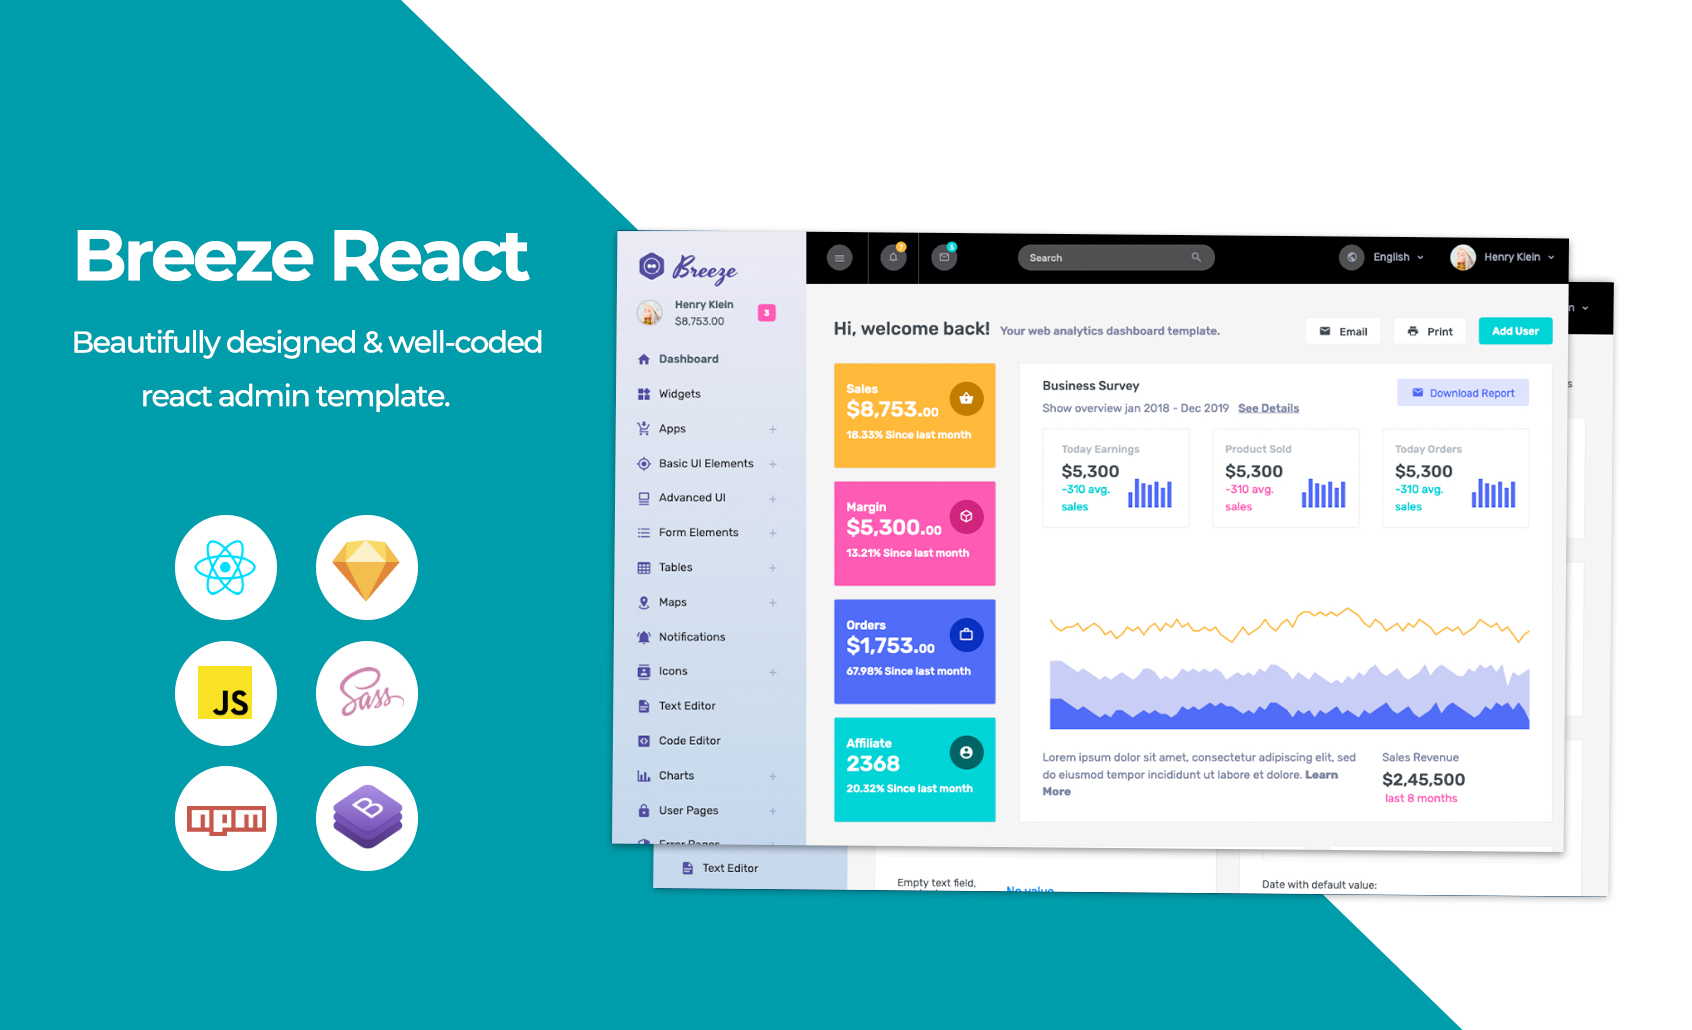 Breeze React